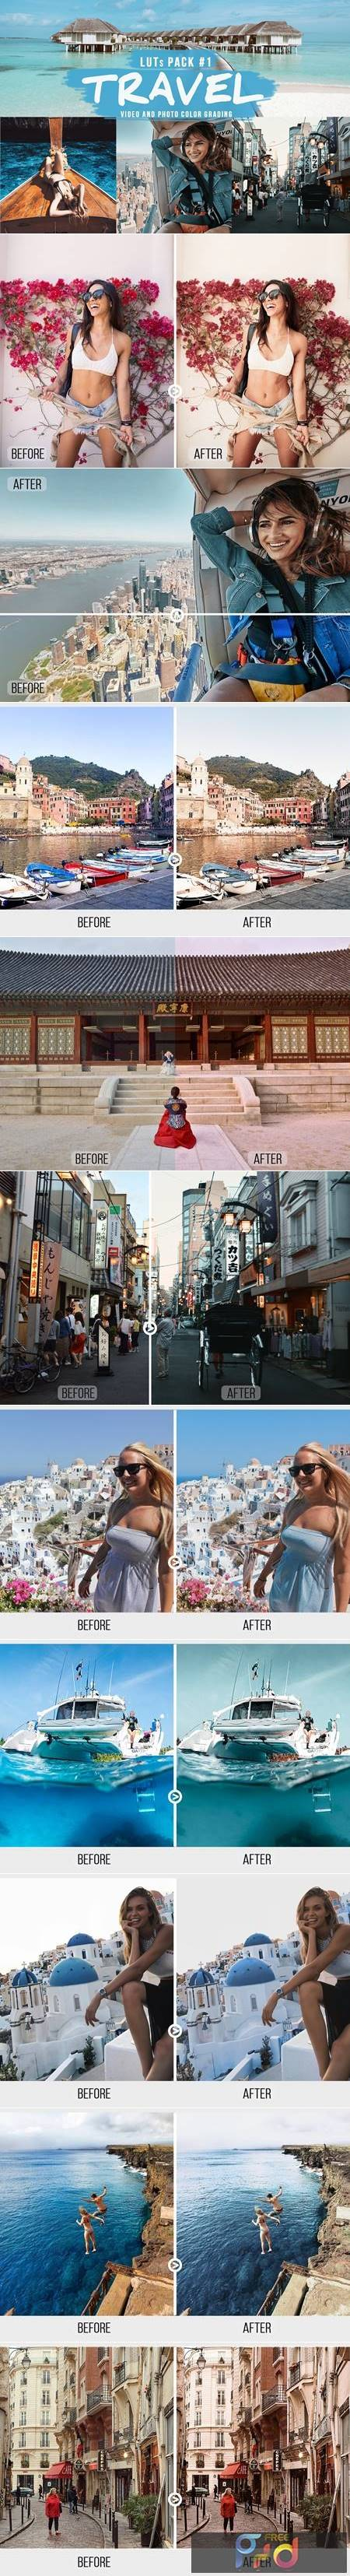 TRAVEL LUTs Pack #1 5460166 1